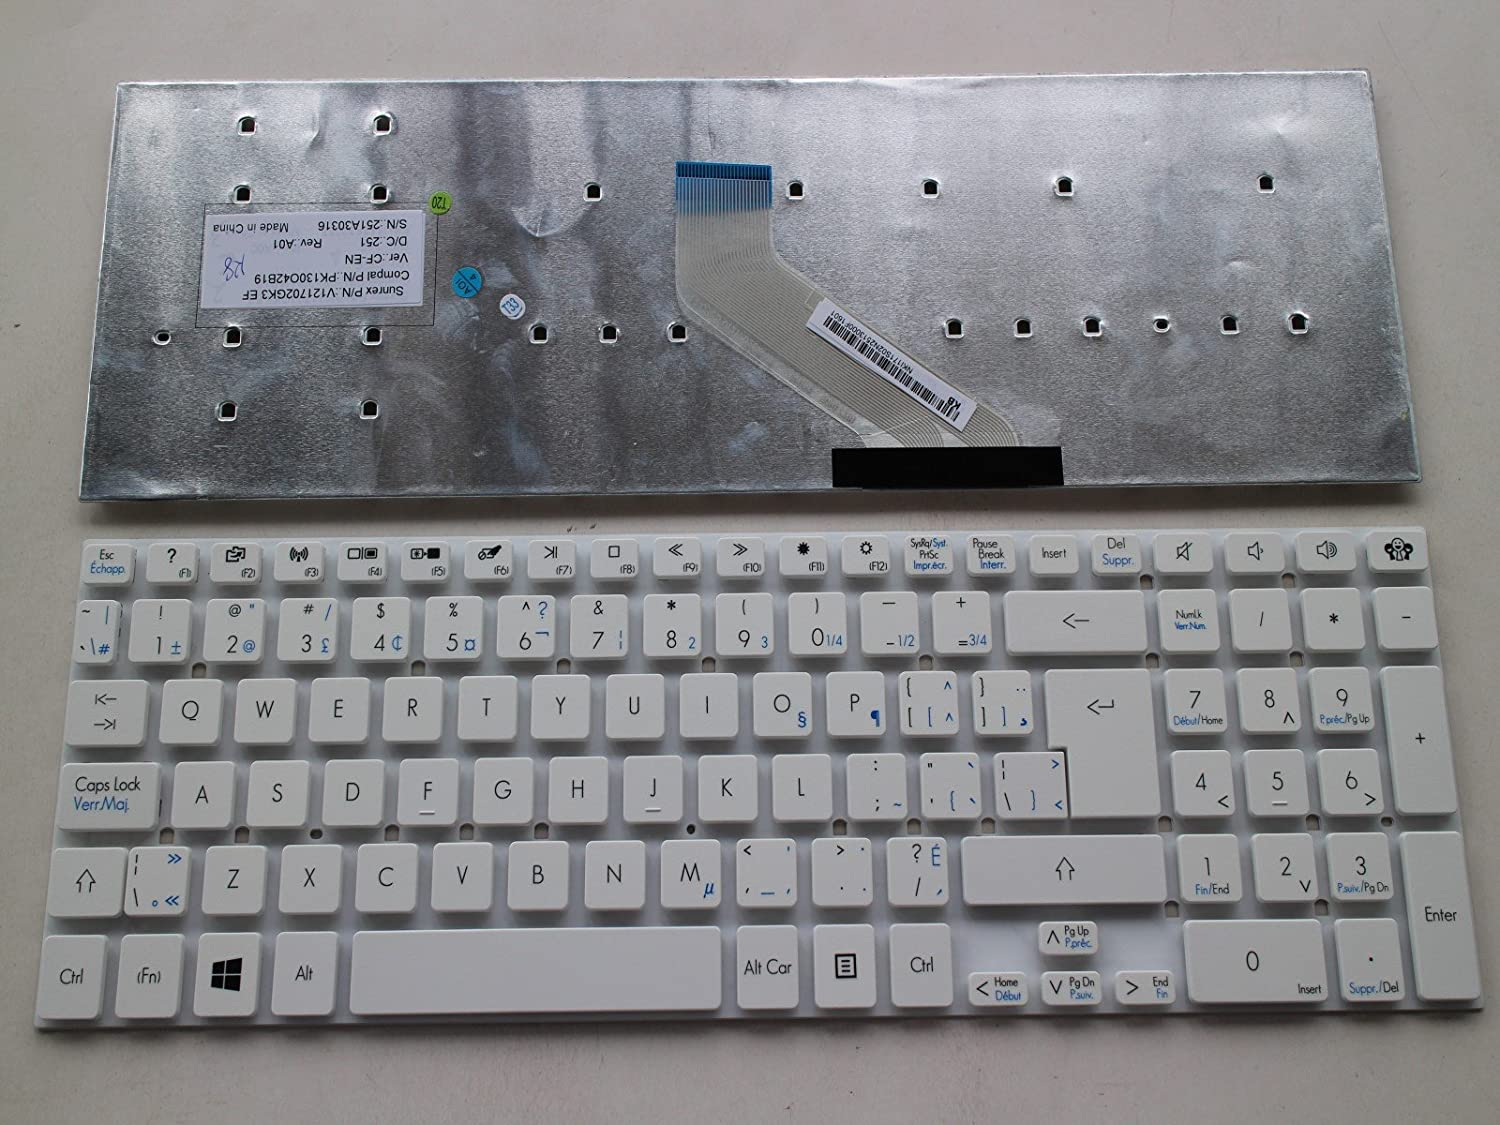 CA Laptop Canadian Clavier Keyboard for Gateway NV52L NV55S NV56R NV57H NV75S NV77H NV76R43u Laptop-Shop